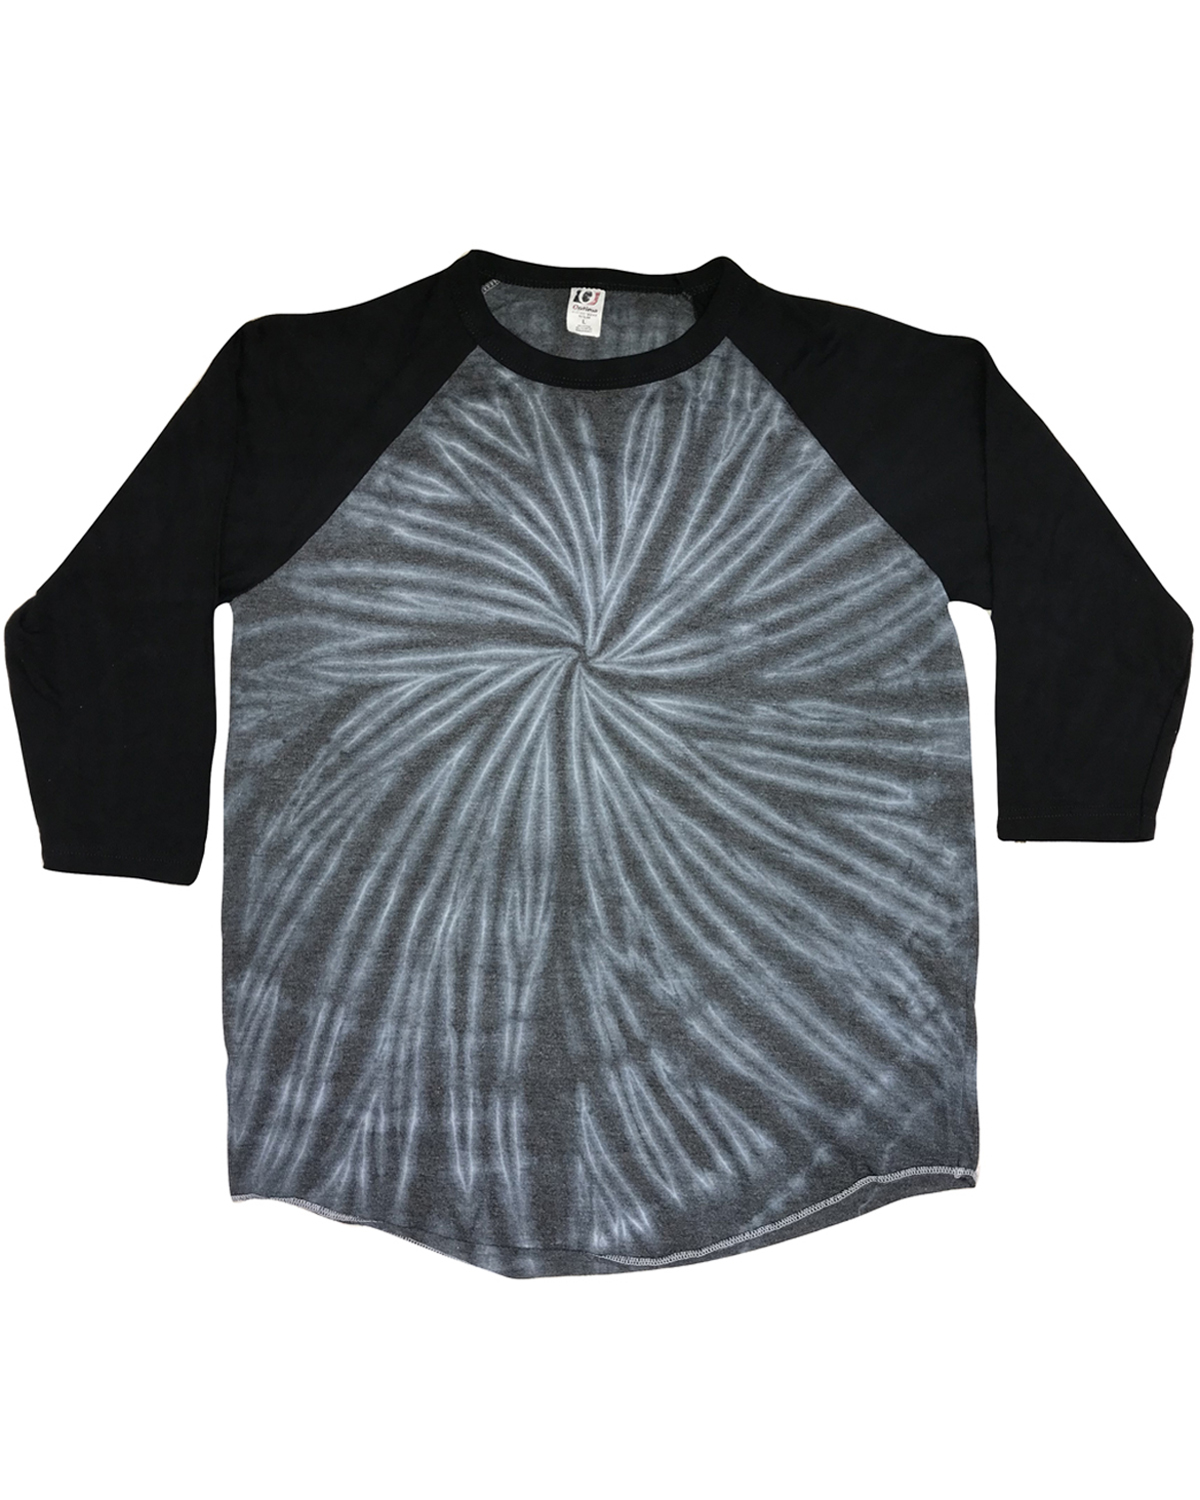 Tie-Dye CD2700 - Drop Ship Raglan Long Sleeve T-Shirt